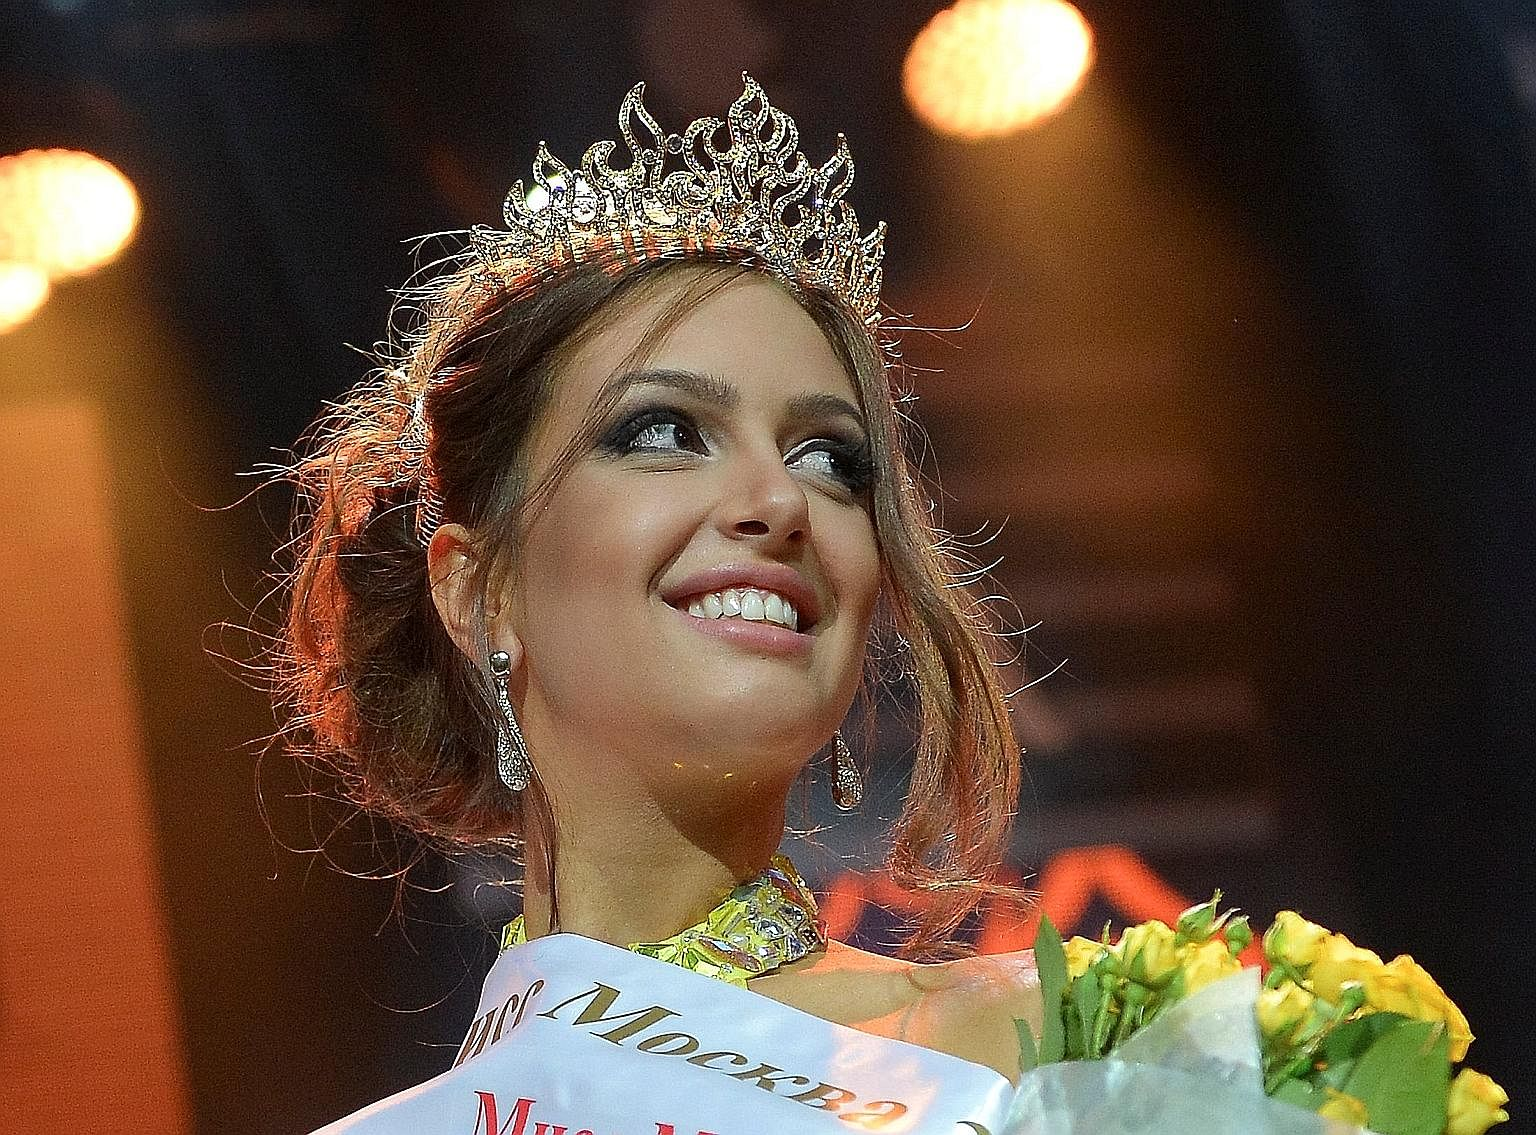 The proverbial straw that broke the camel's back was Sultan Muhammad V's secretive Nov 22 wedding to Russian beauty queen Oksana Voevodina (above).